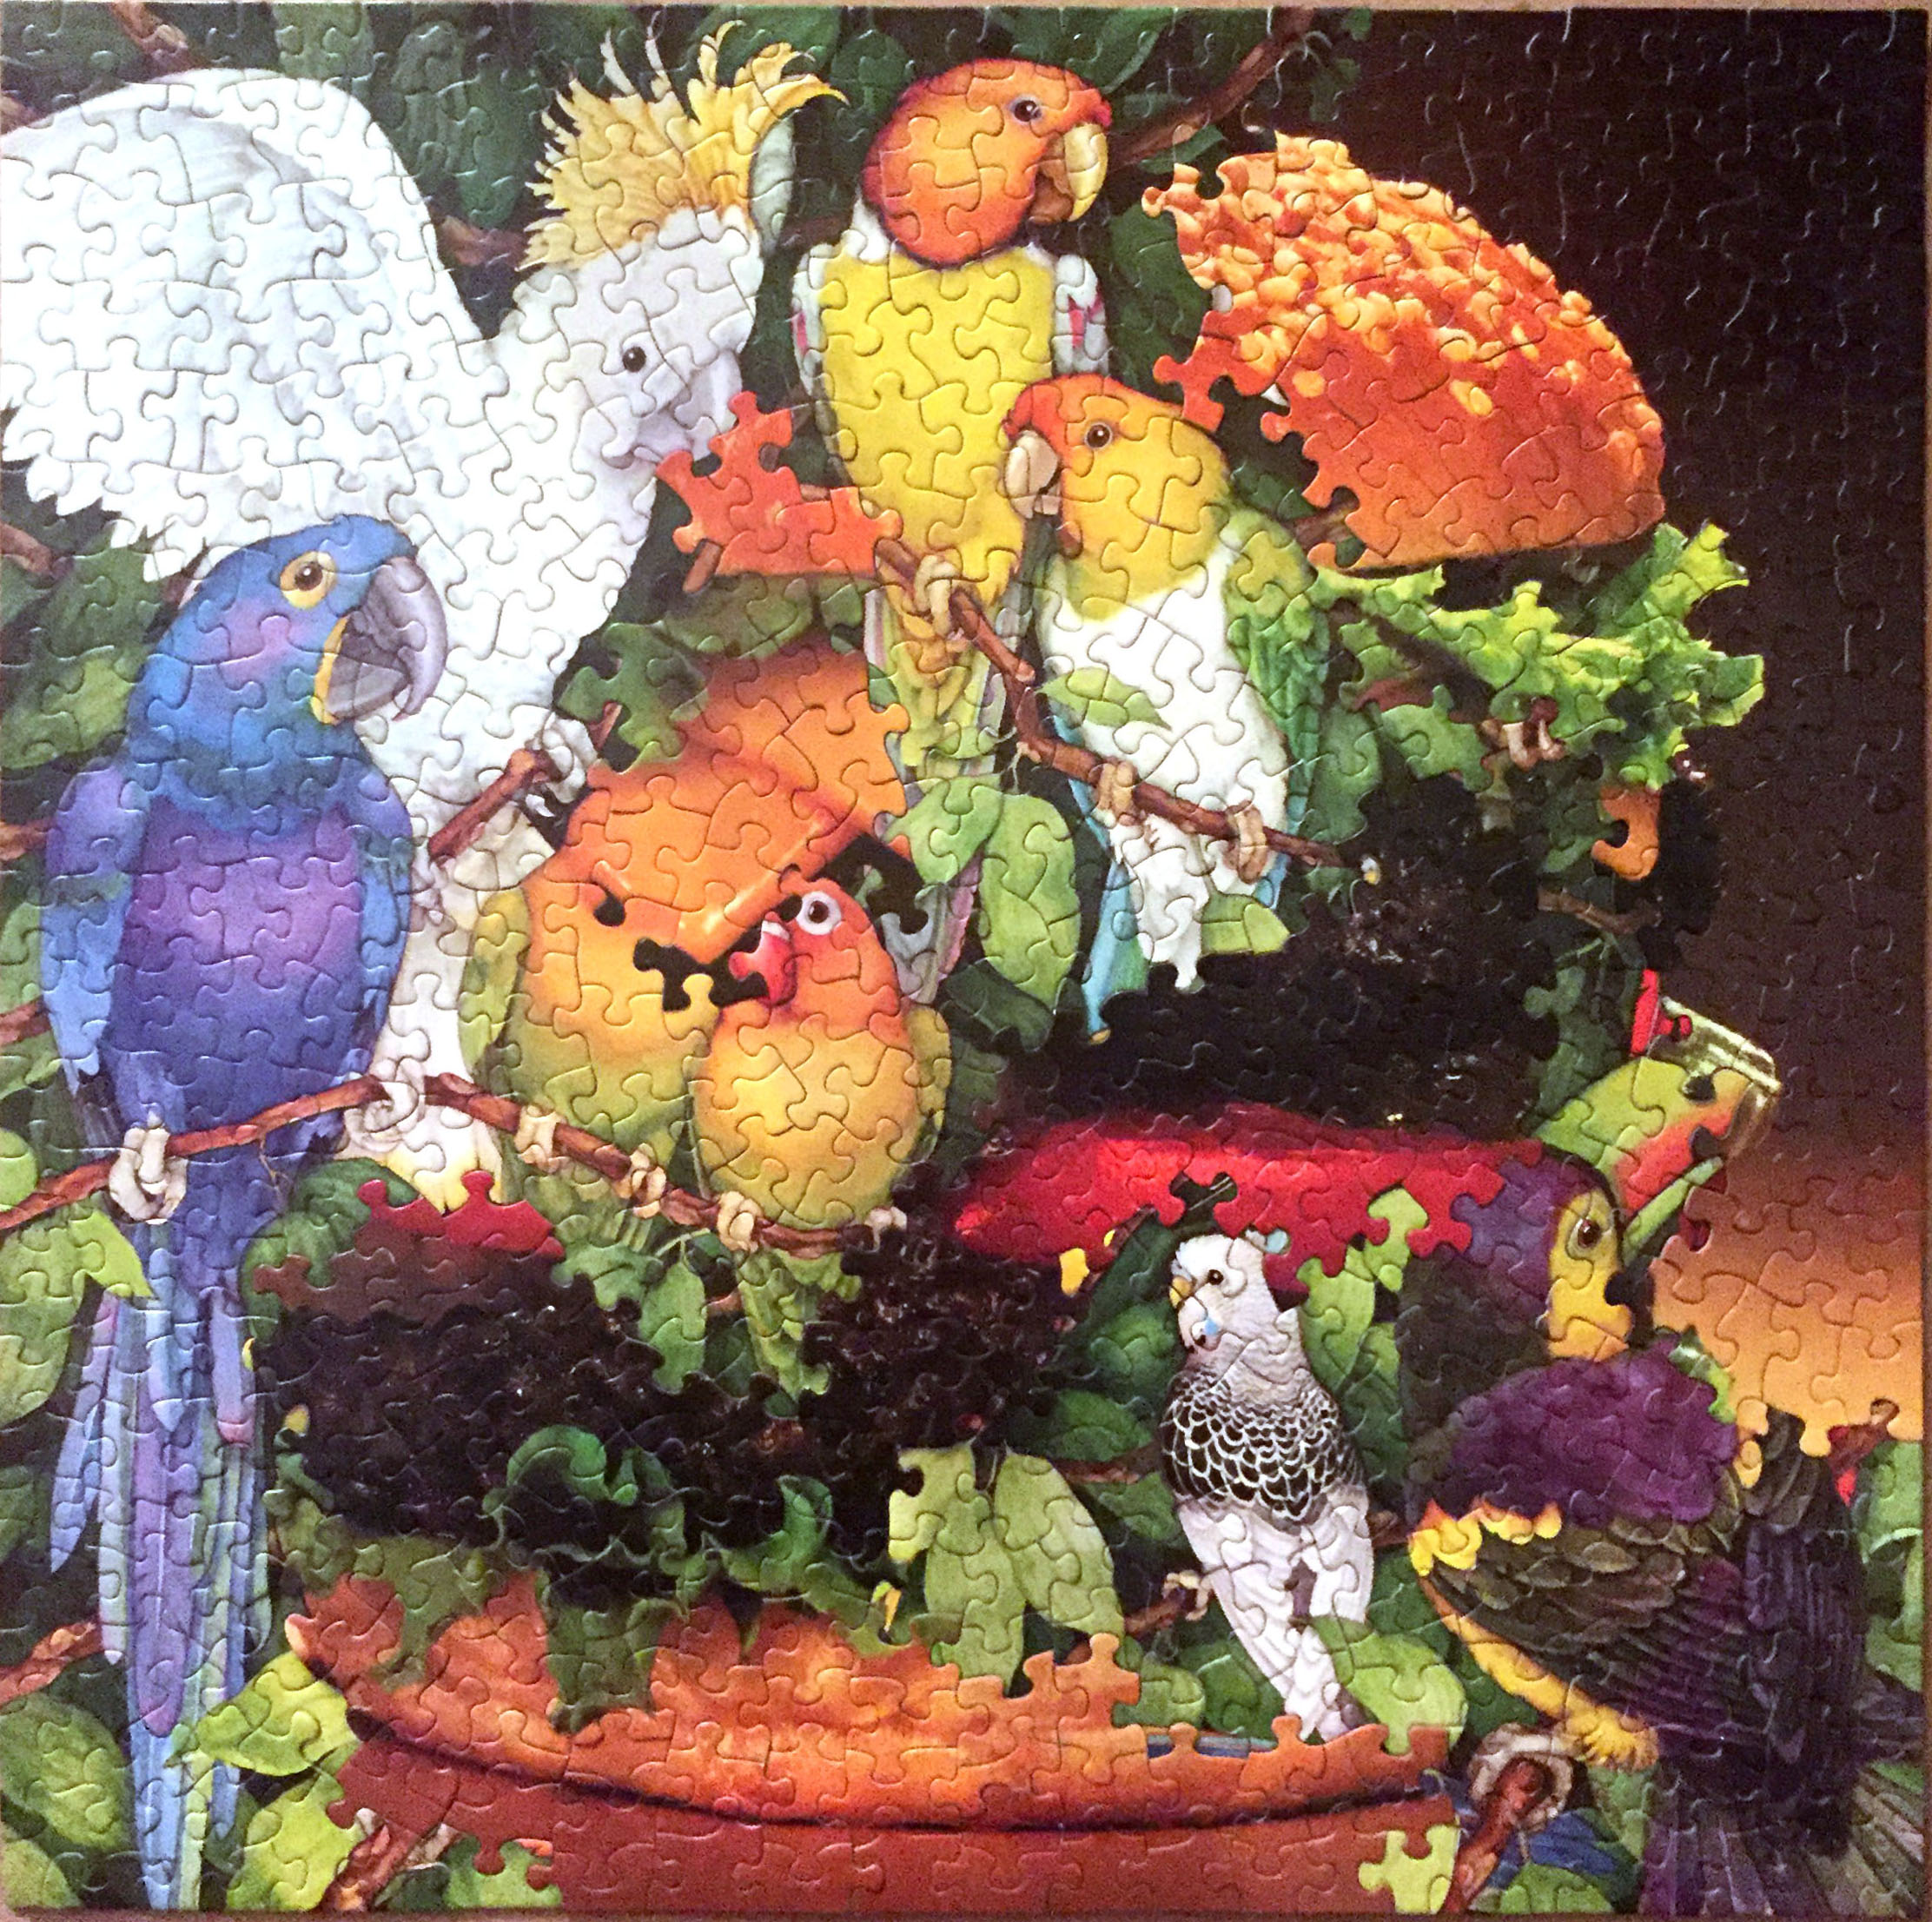 Parrot Burger Party, B-Side, jigsaw puzzle collage, vintage jigsaw puzzles